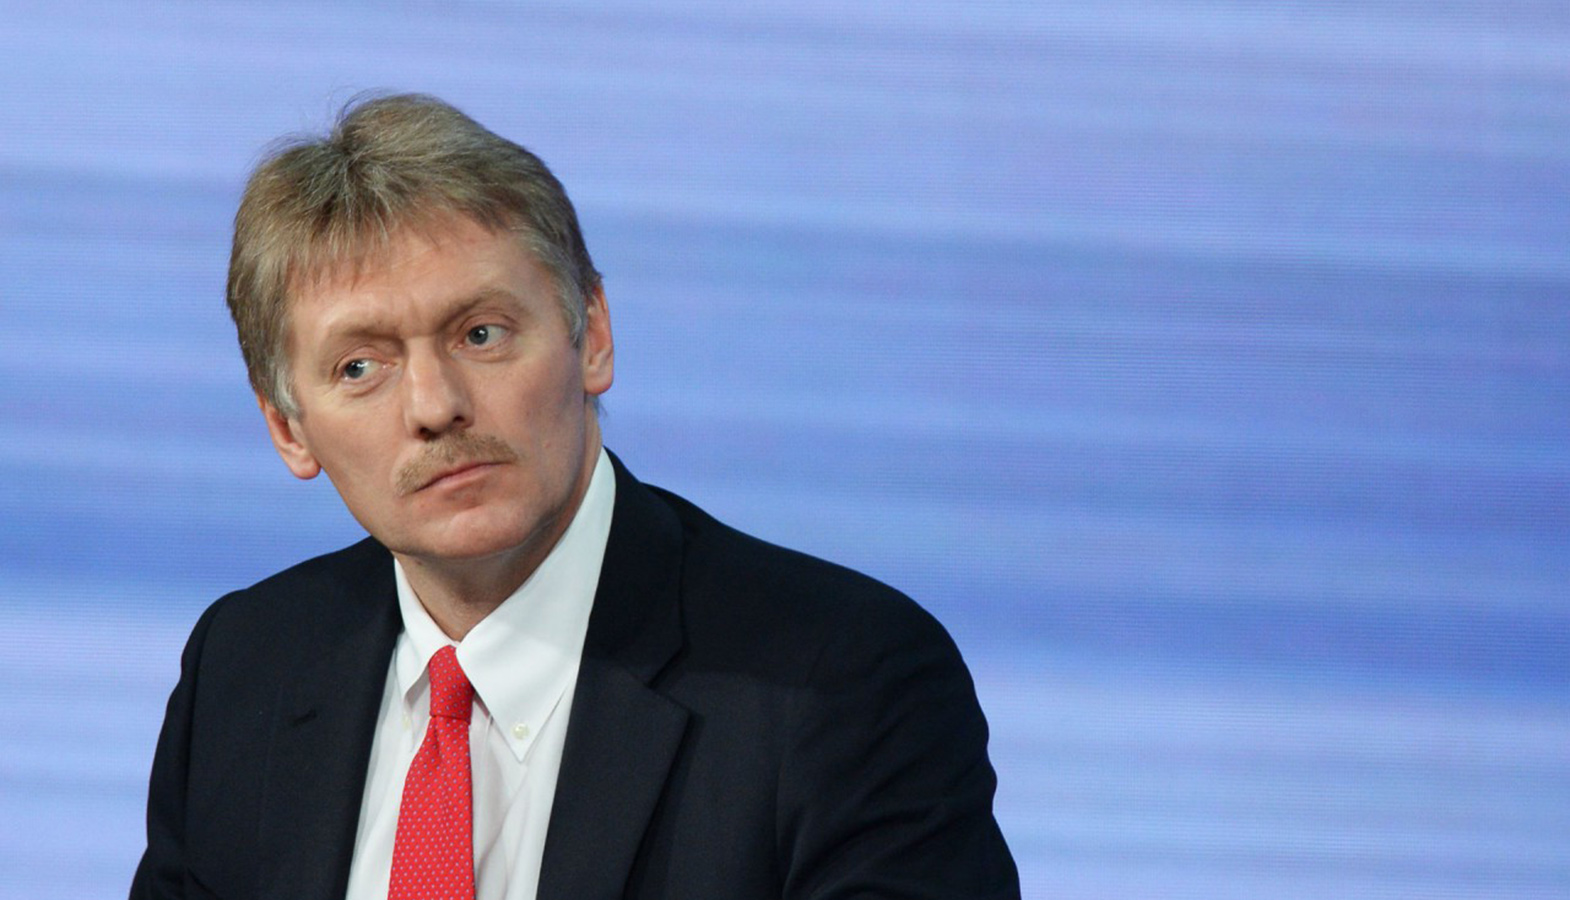 Peskov Called The Situation With Navalny Absurd